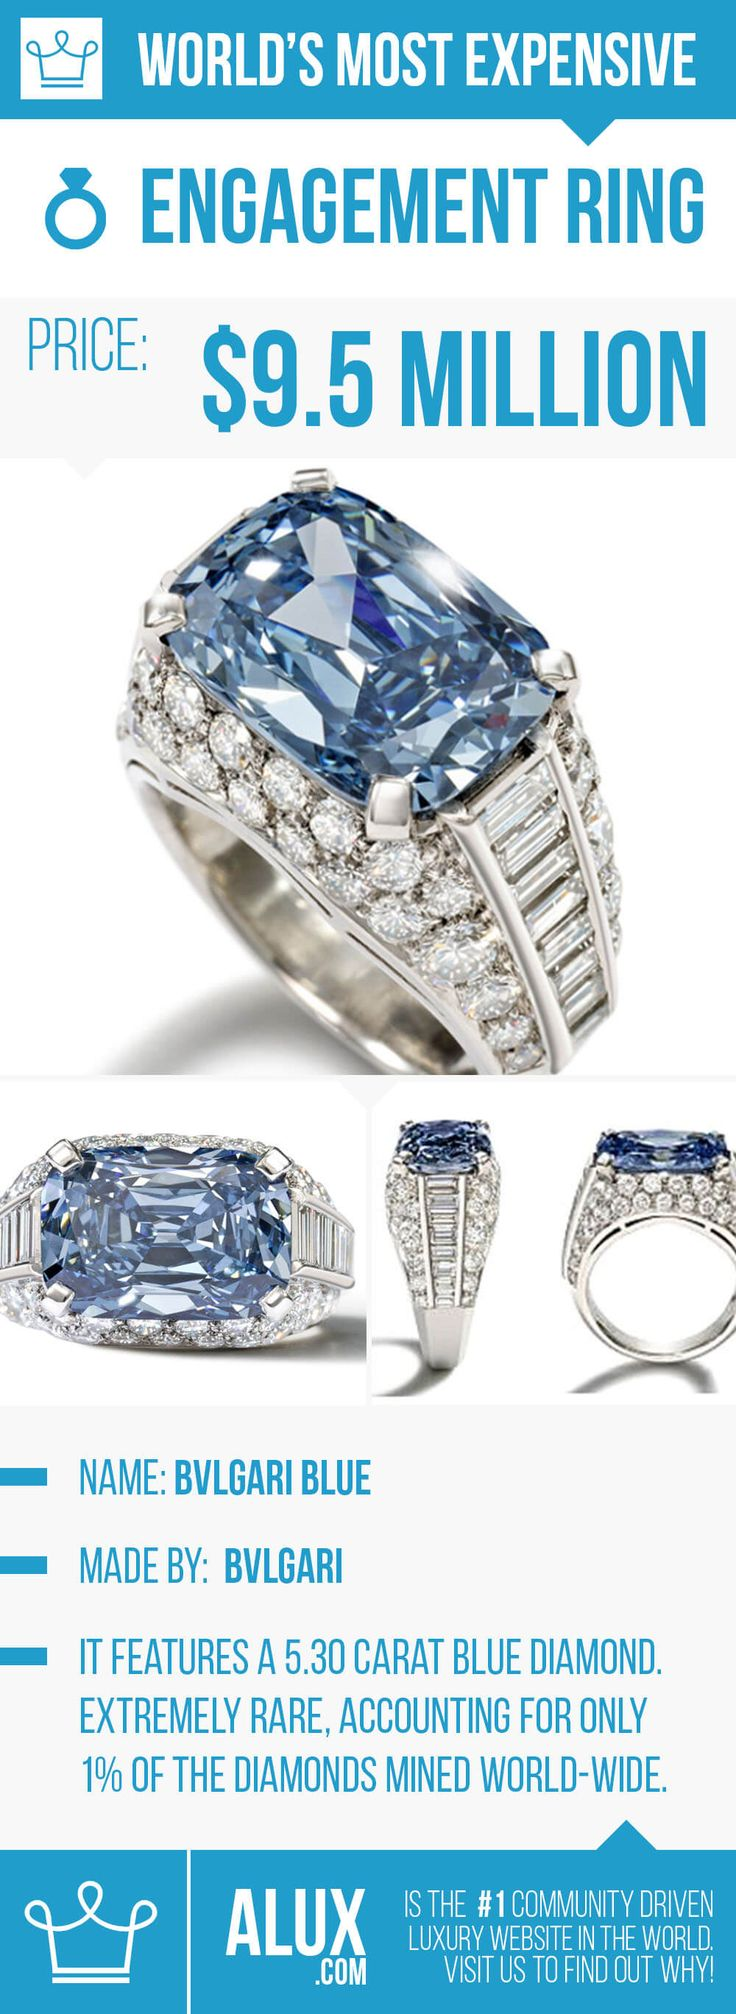 Most Expensive Engagement Ring In The World Blue Diamond Picture Price Alux  Bvlgari Bulgari Blue